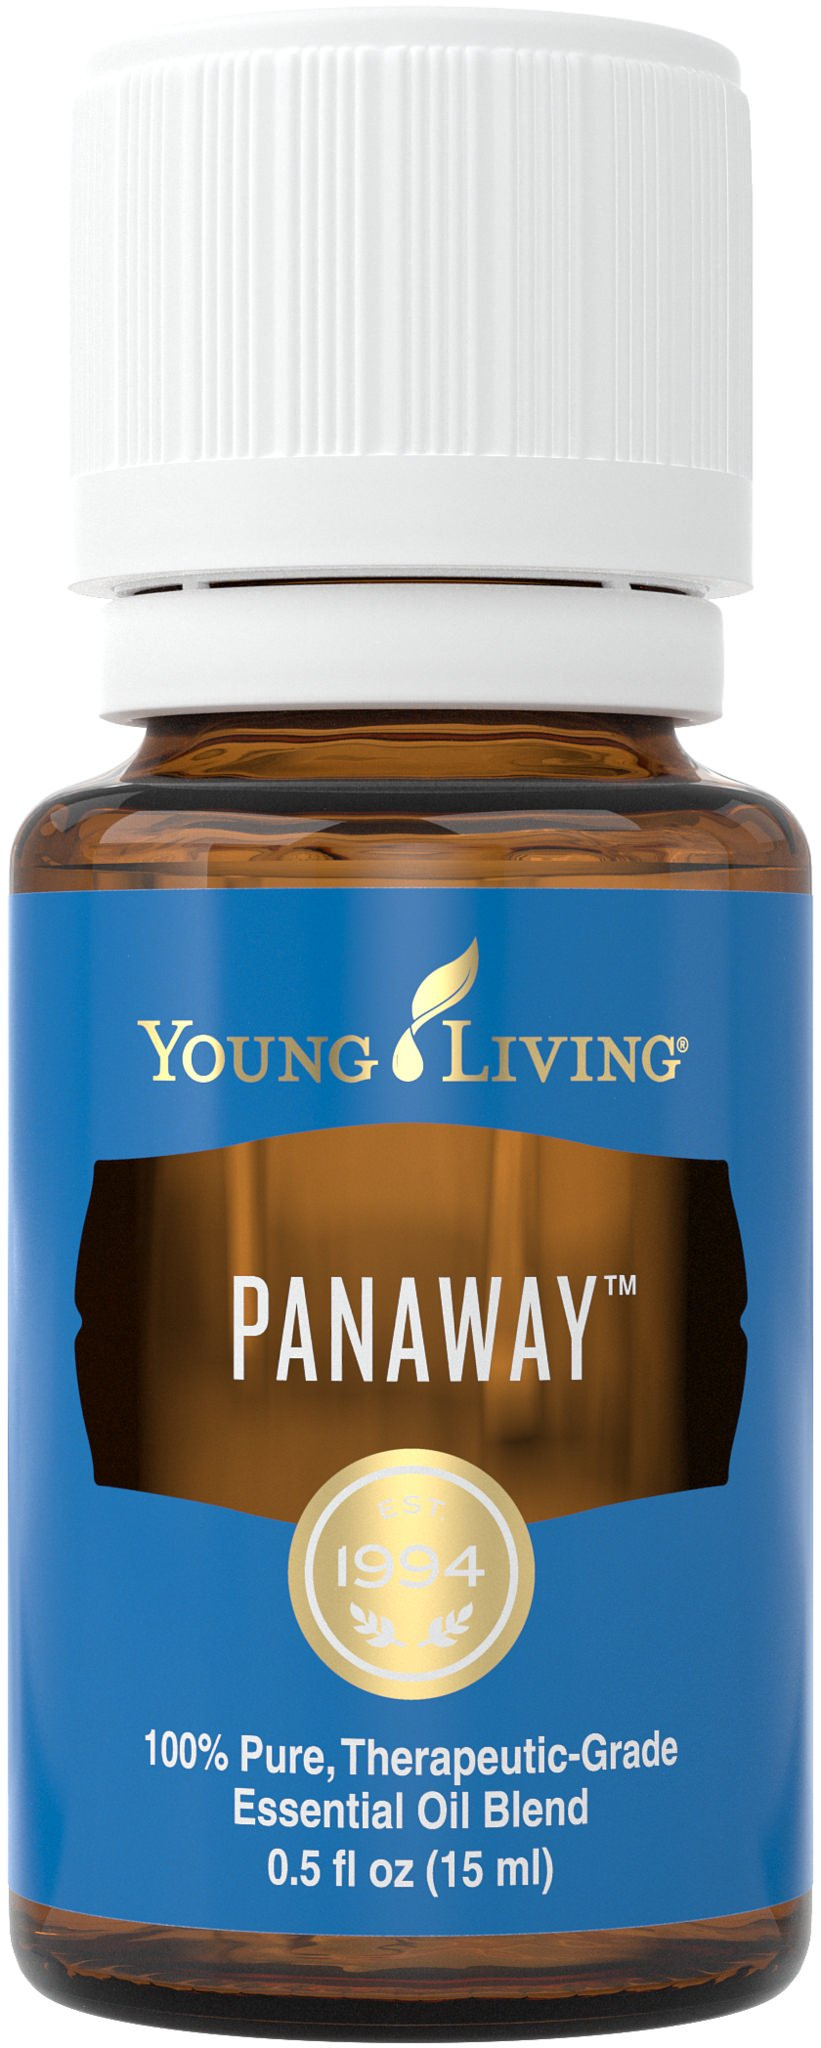 10 Young Living Products for Travel | Carpe Diem OUR Way ...